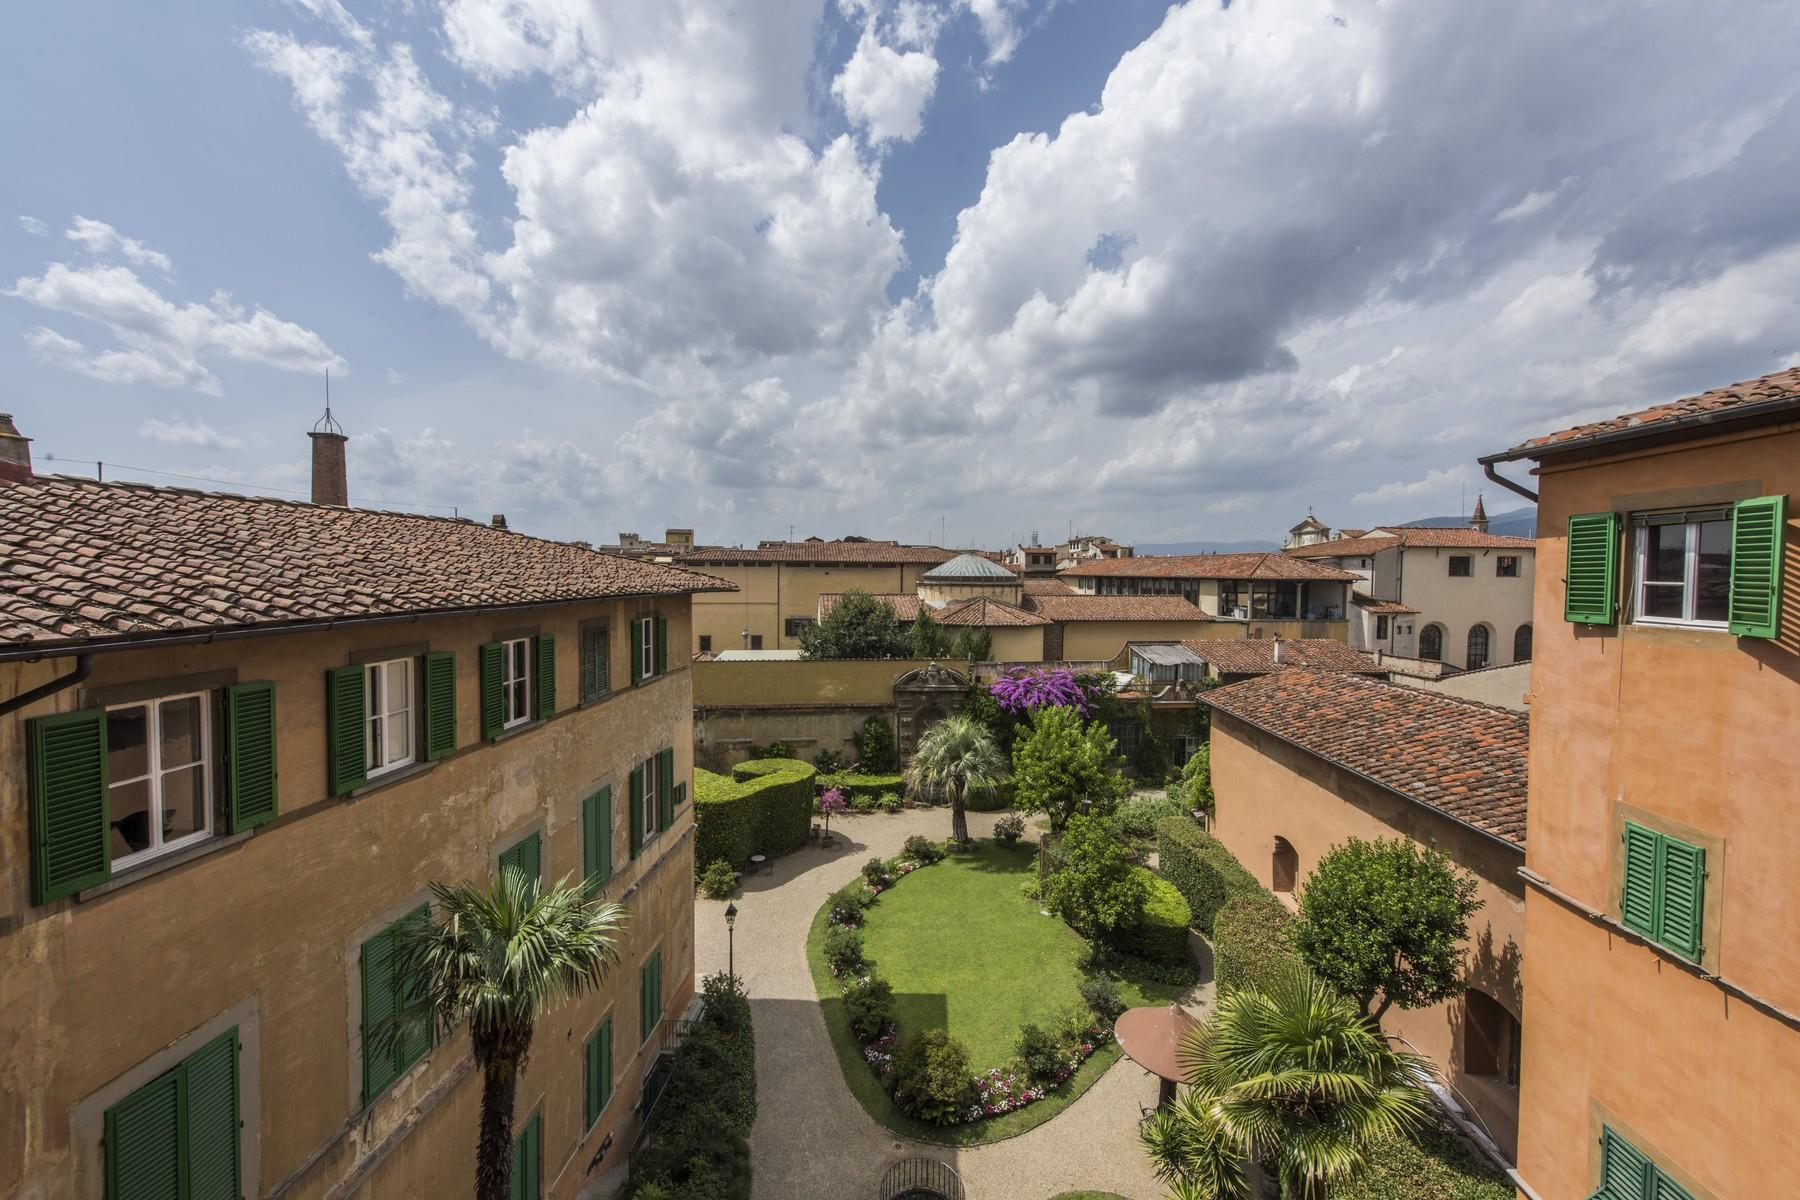 Magnificent 520sqm penthouse in a historic Florentine palazzo. - 2